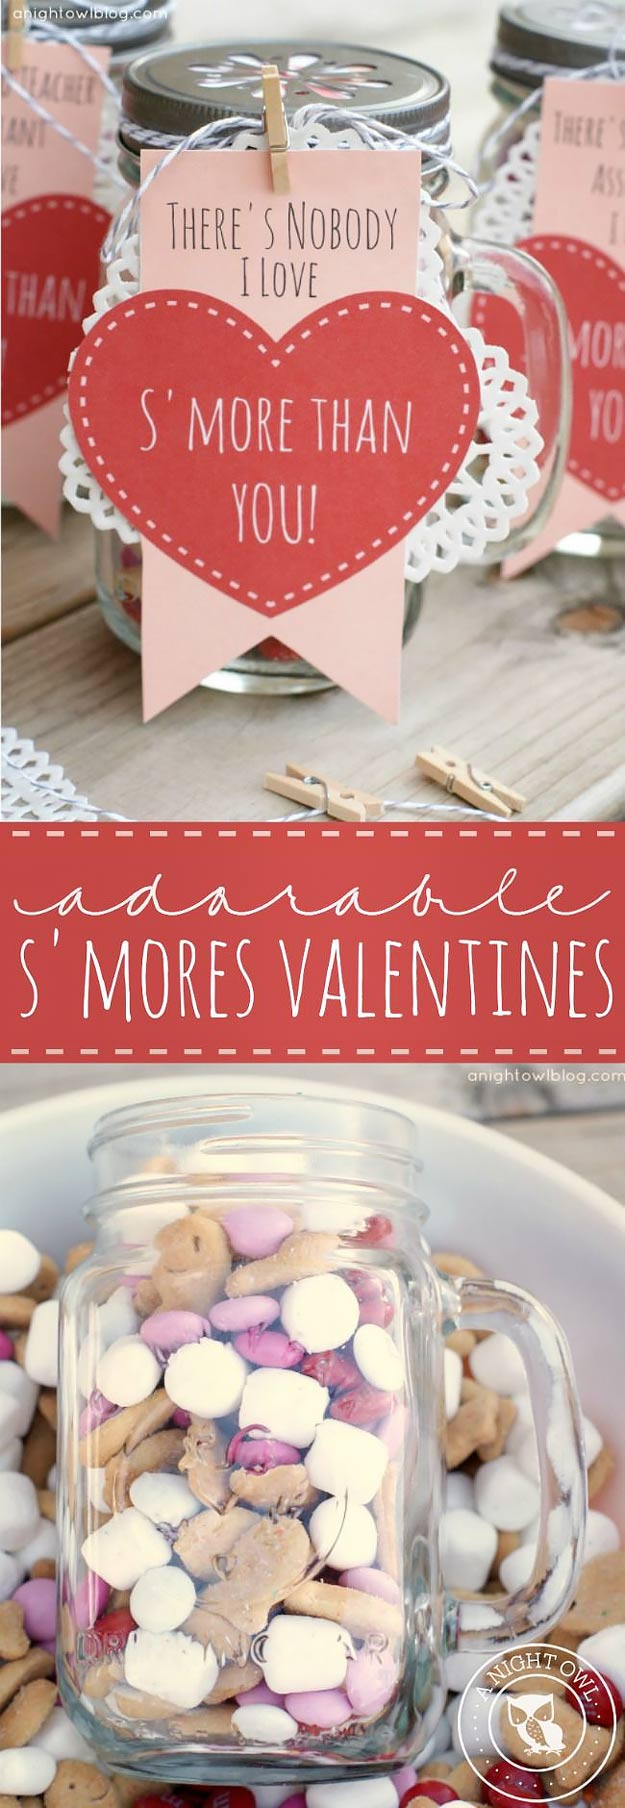 Mason Jar Valentine Gifts and Crafts   DIY Ideas for Valentines Day for Cute Gift Giving and Decor   S'mores Valentines   #valentines